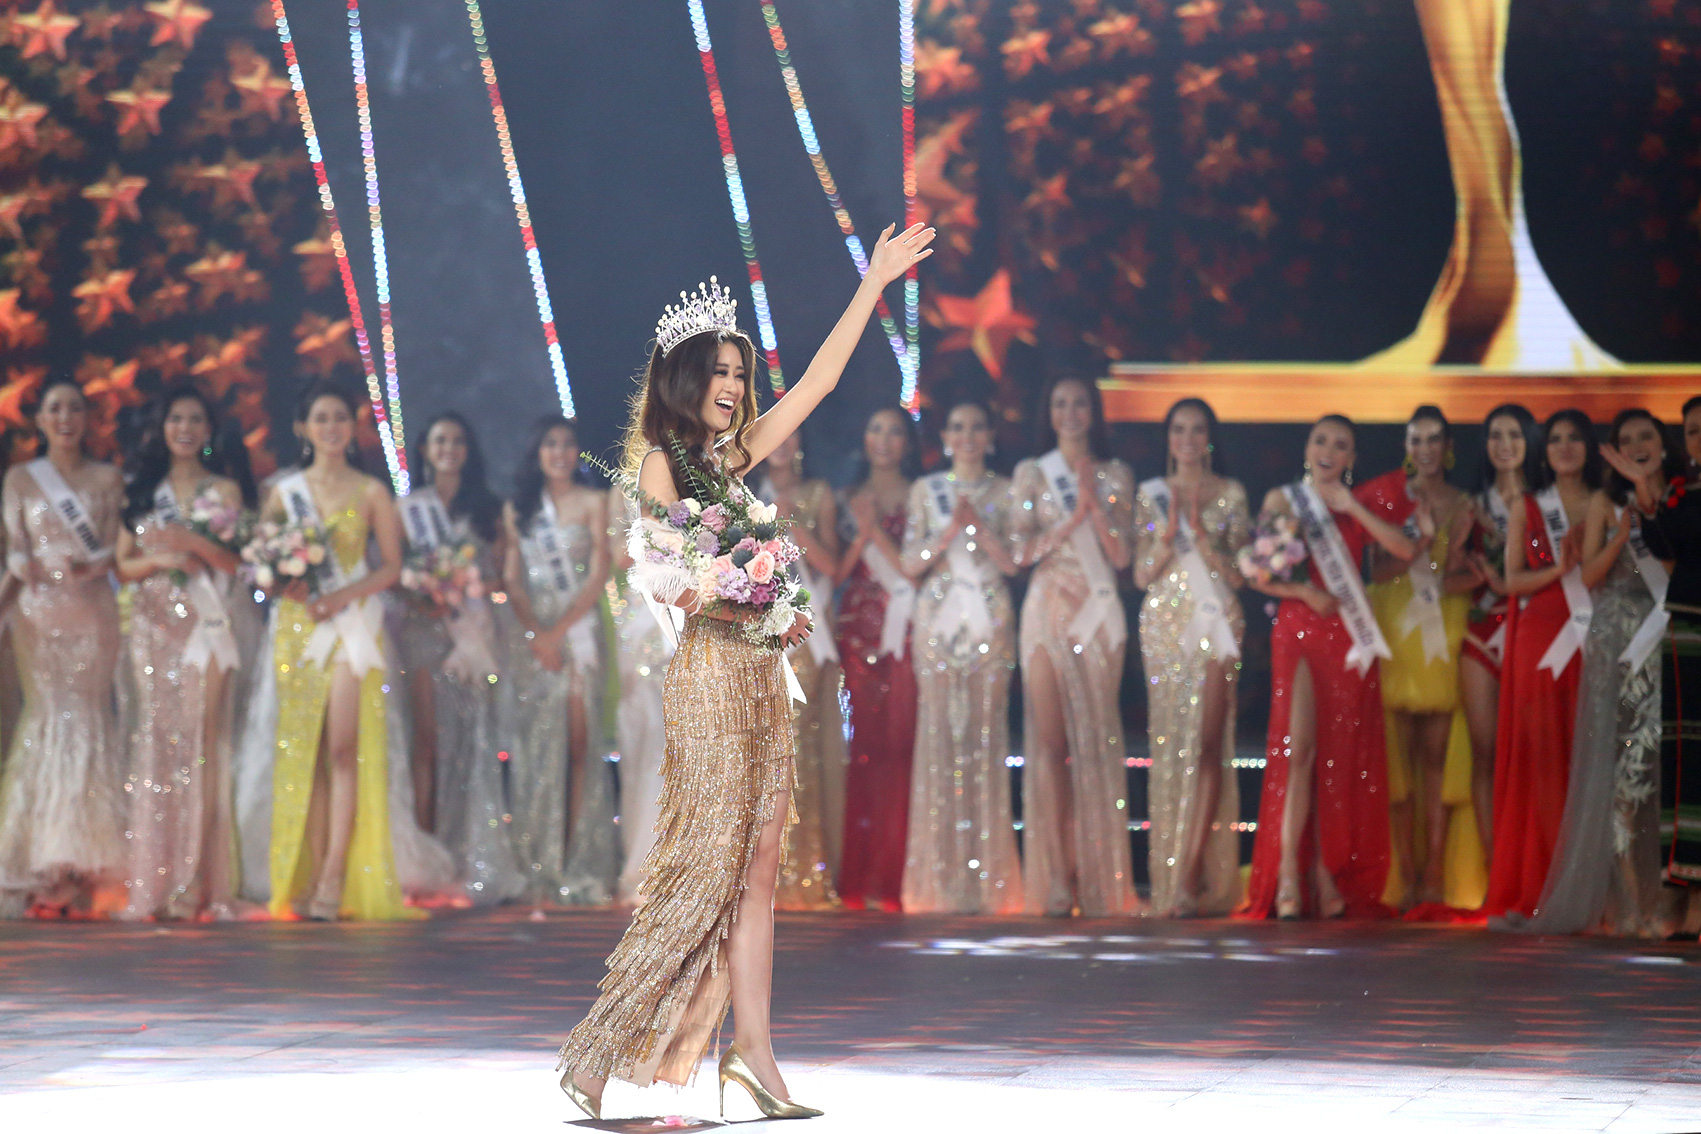 Nguyen Tran Khanh Van takes her first walk as Miss Universe Vietnam 2019.